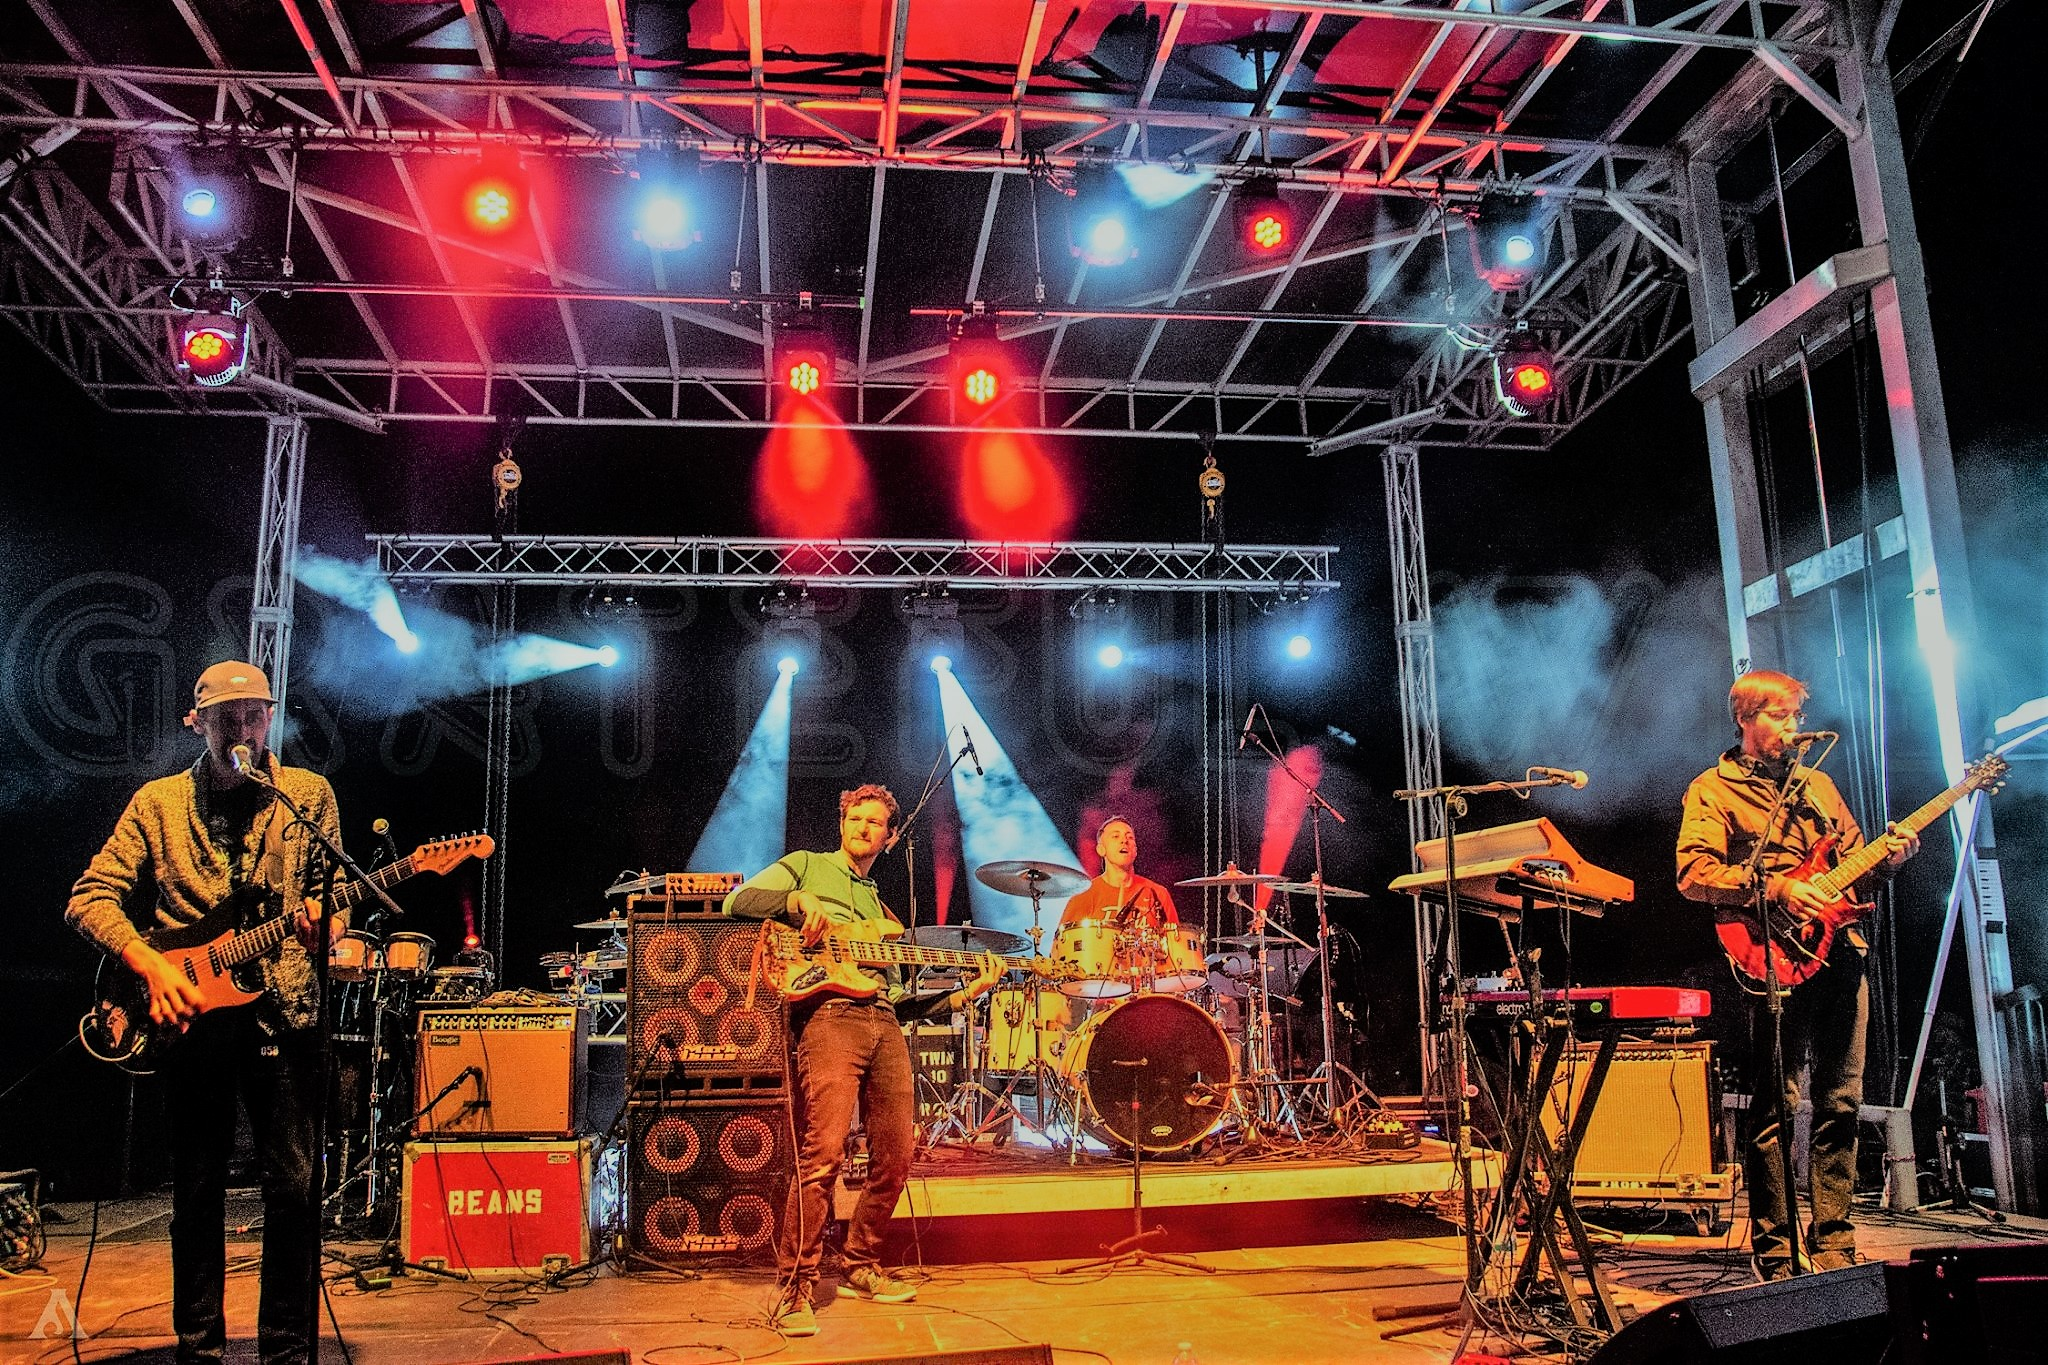 Aqueous | Beanstalk Music Festival